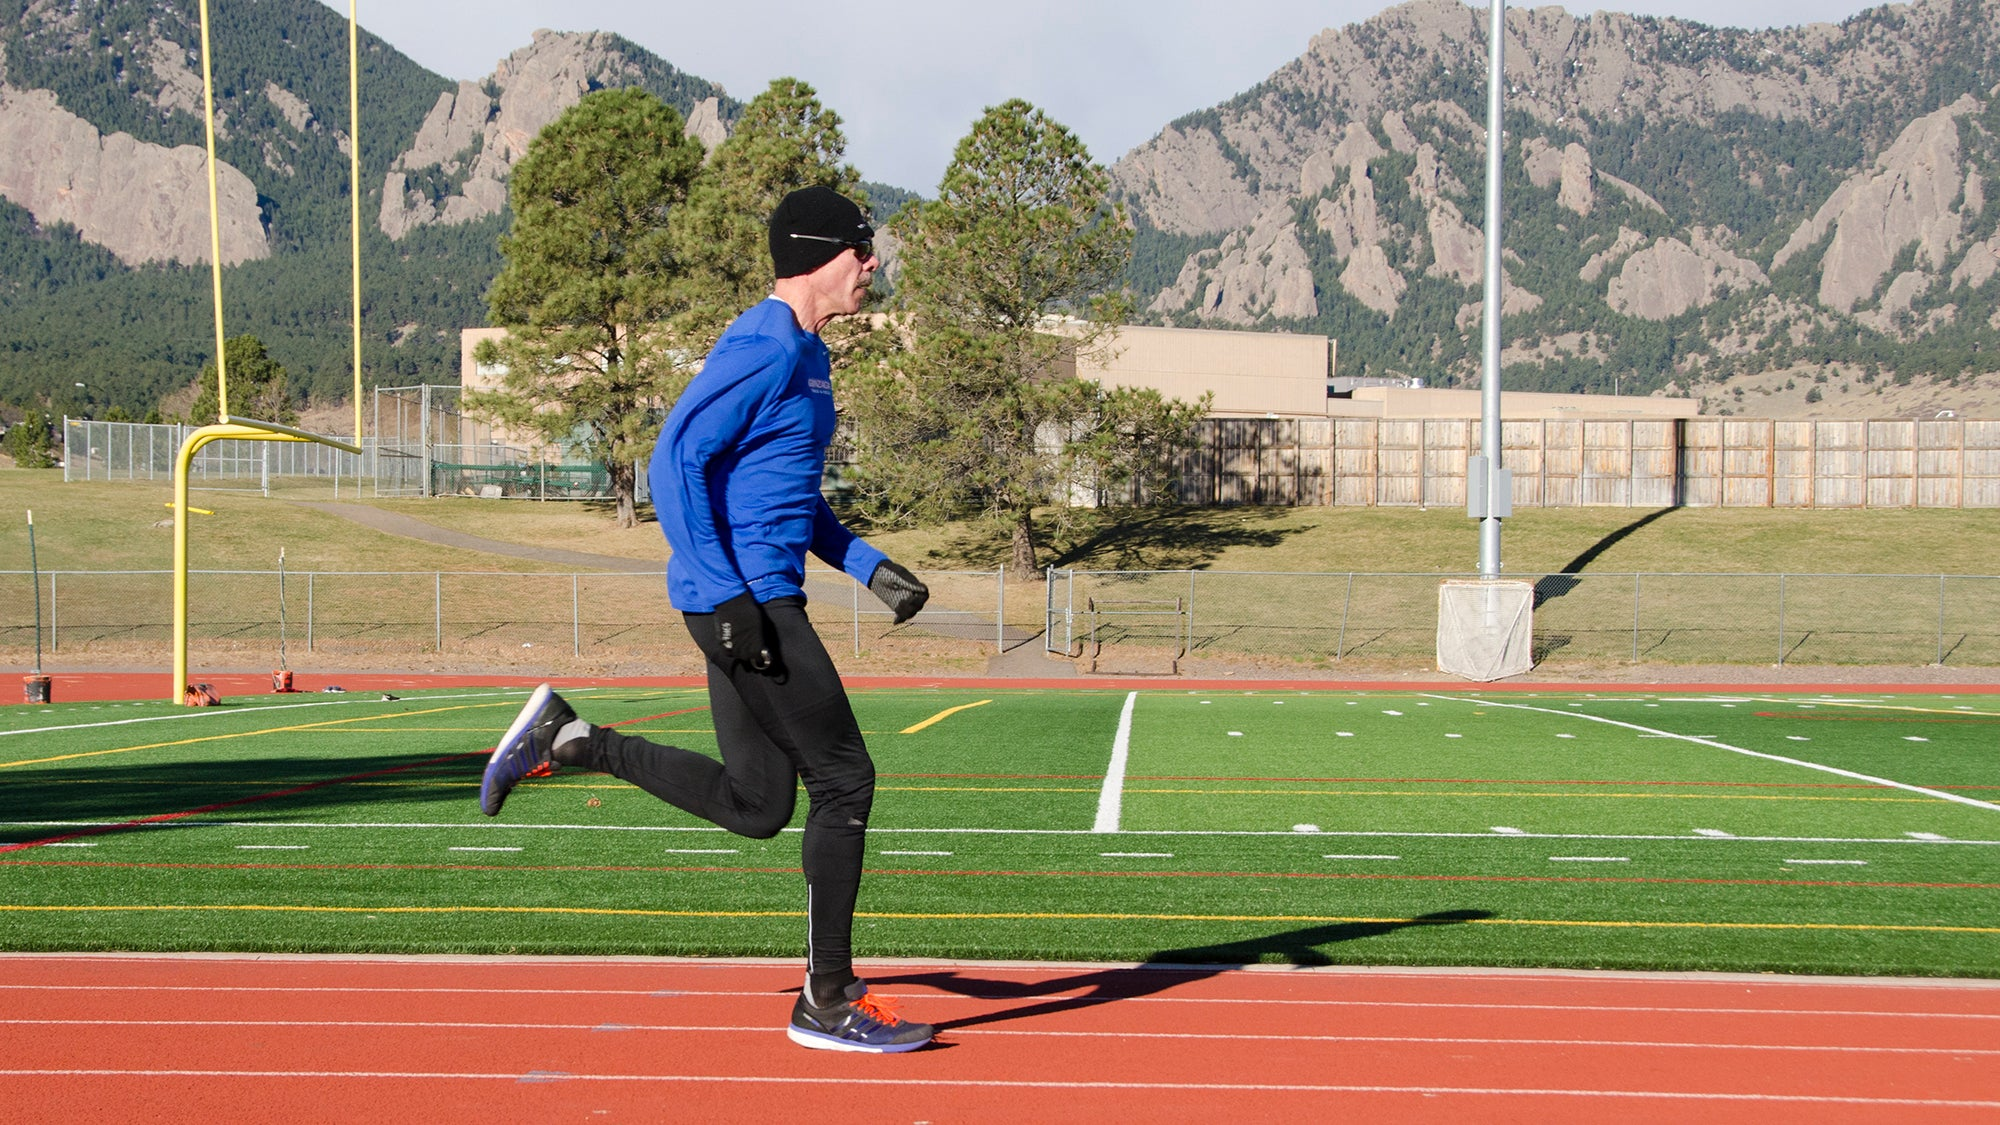 masters runner training on track